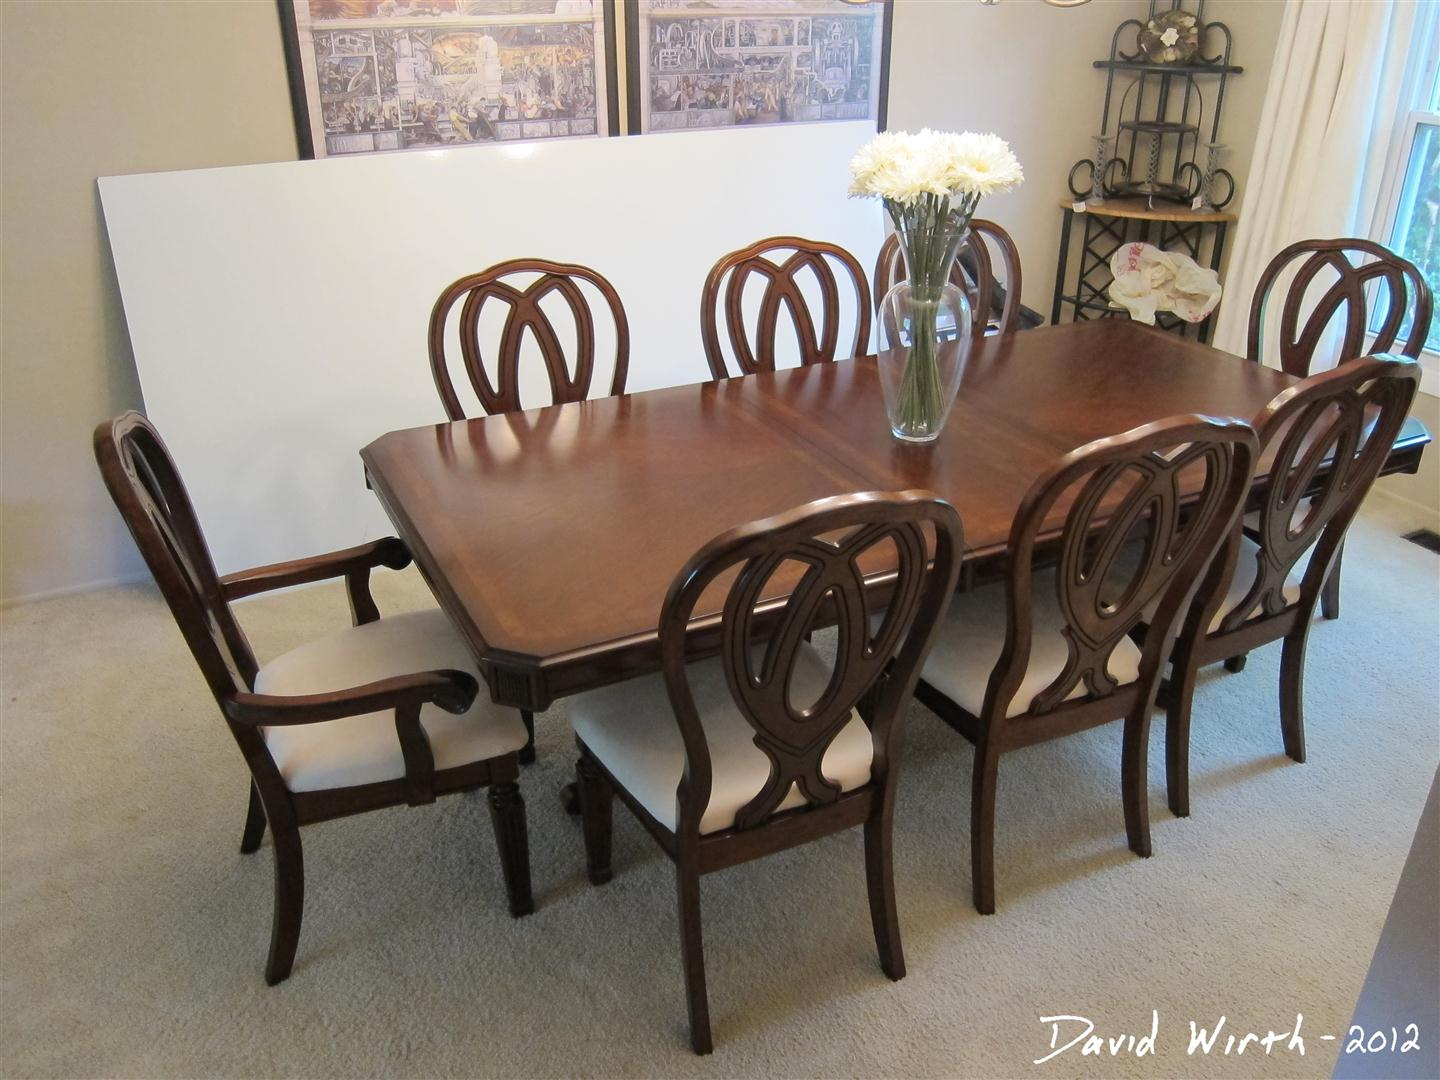 Impressive Dining Room Tables and Chairs 1440 x 1080 · 184 kB · jpeg